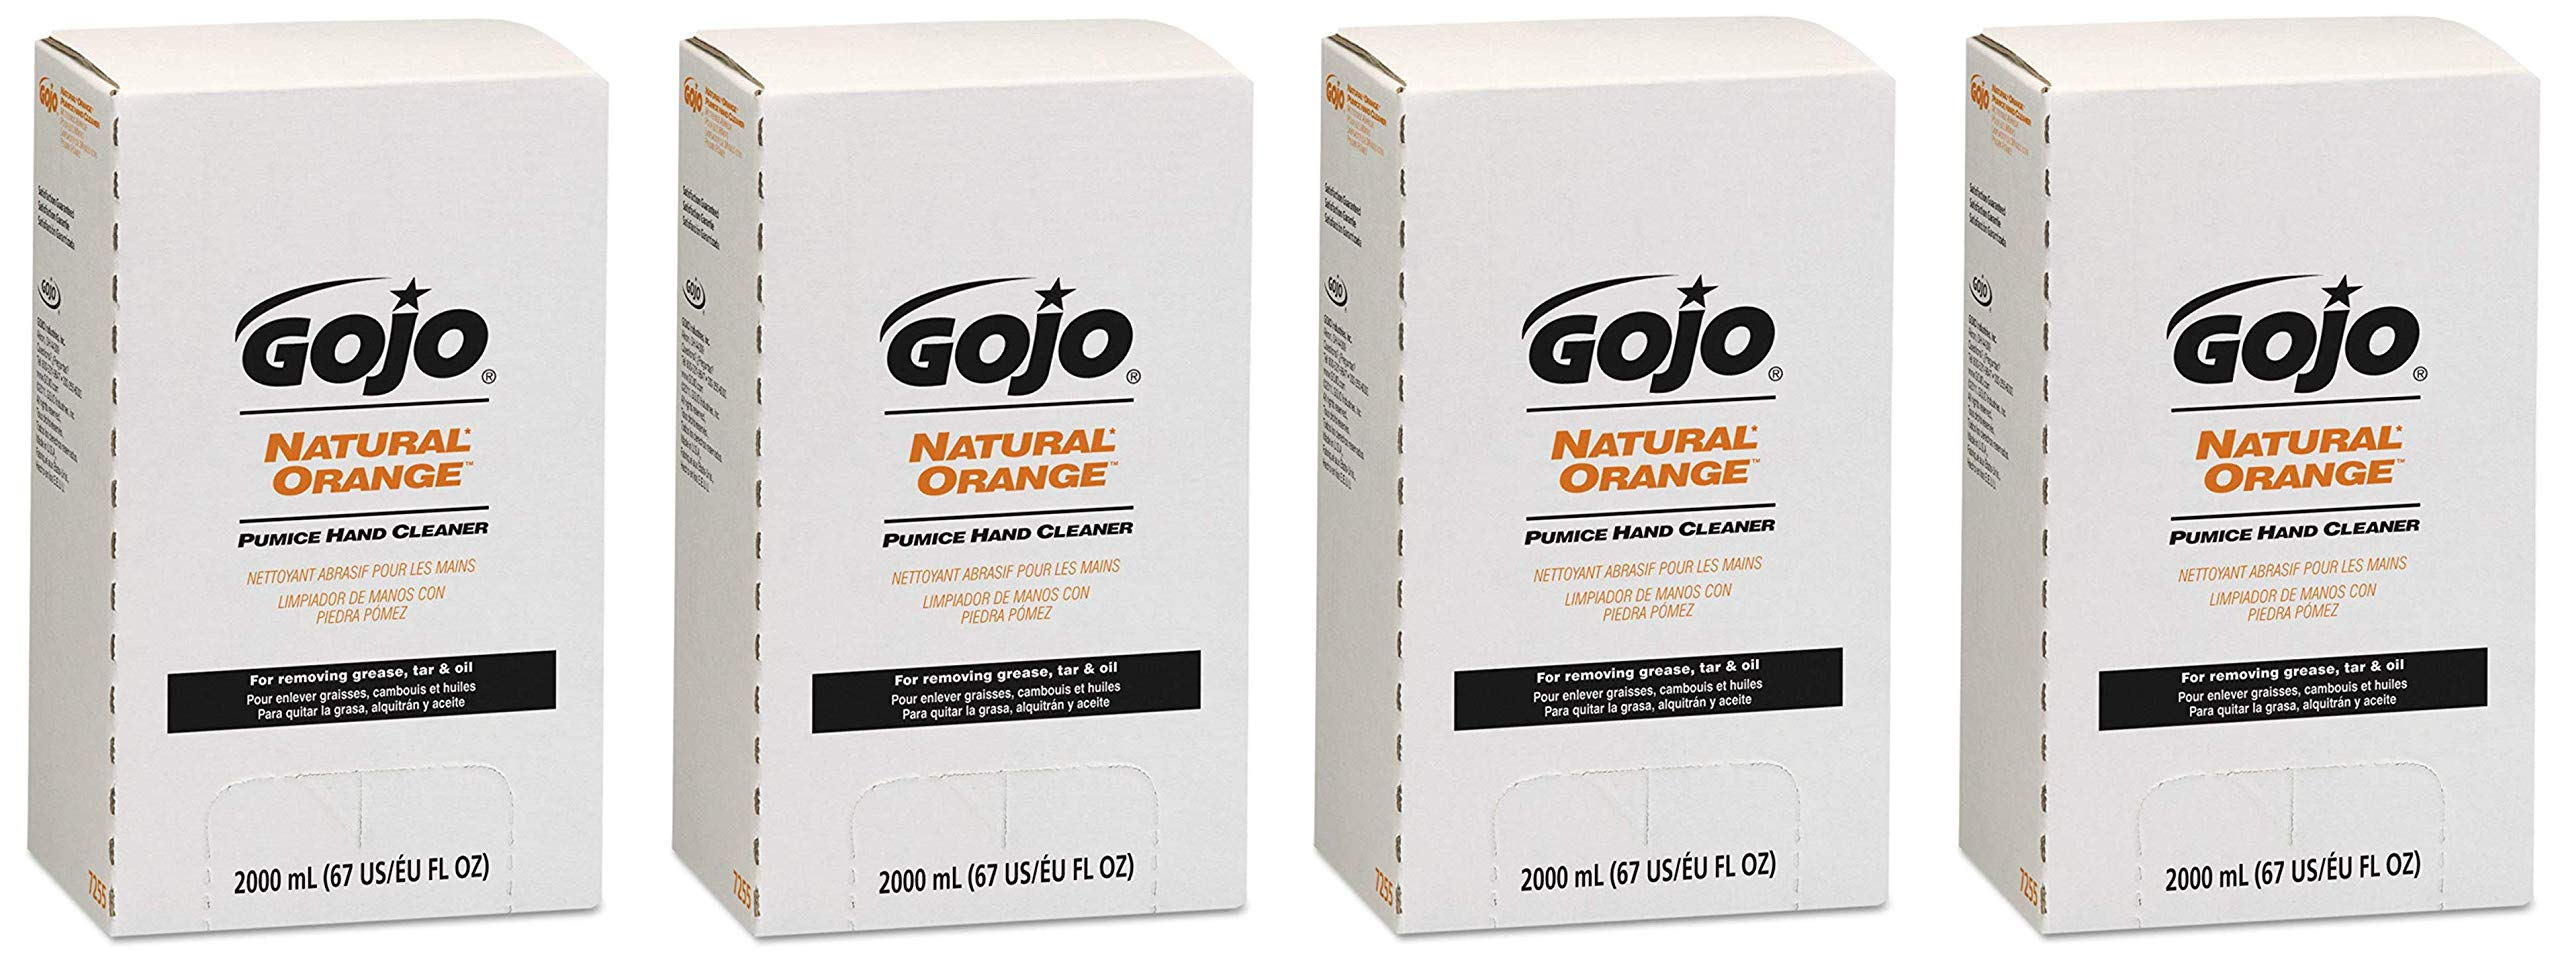 GOJO NATURAL ORANGE Pumice Hand Cleaner, 2000 mL Quick Acting Lotion Hand Cleaner with Pumice Refill for GOJO PRO TDX Dispenser (Pack of 4) - 7255-04 (Fоur Расk) by Gojo